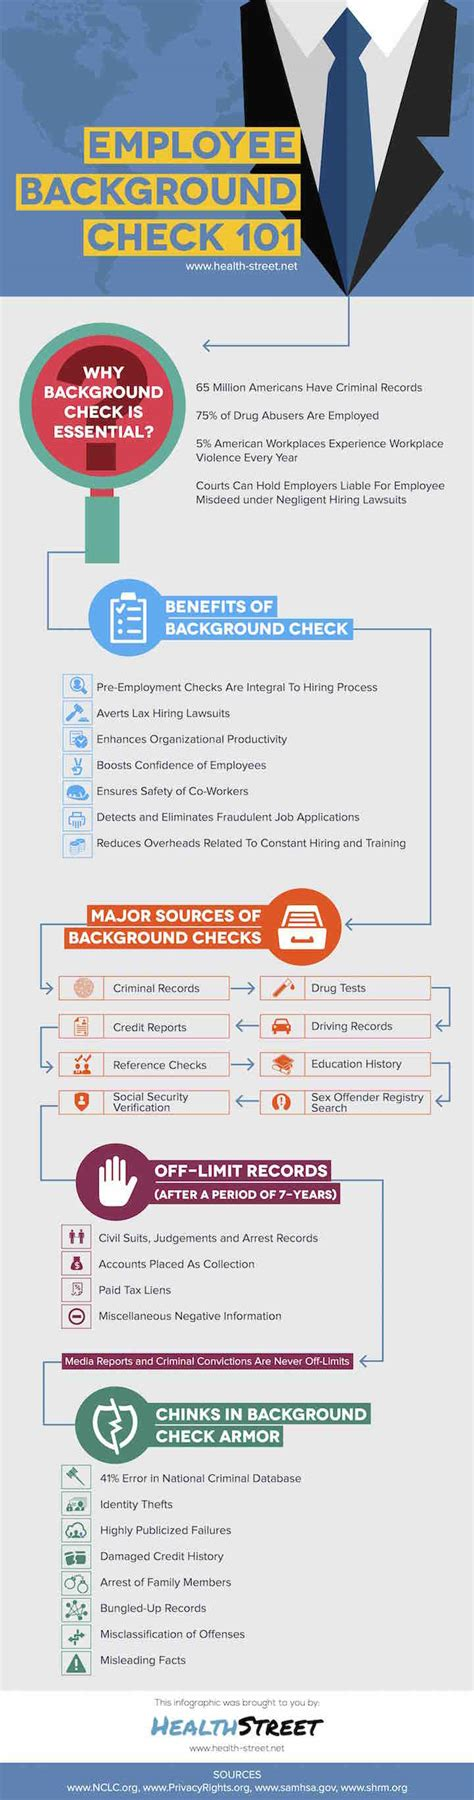 Background Check For Employers Employee Background Check 101 Health